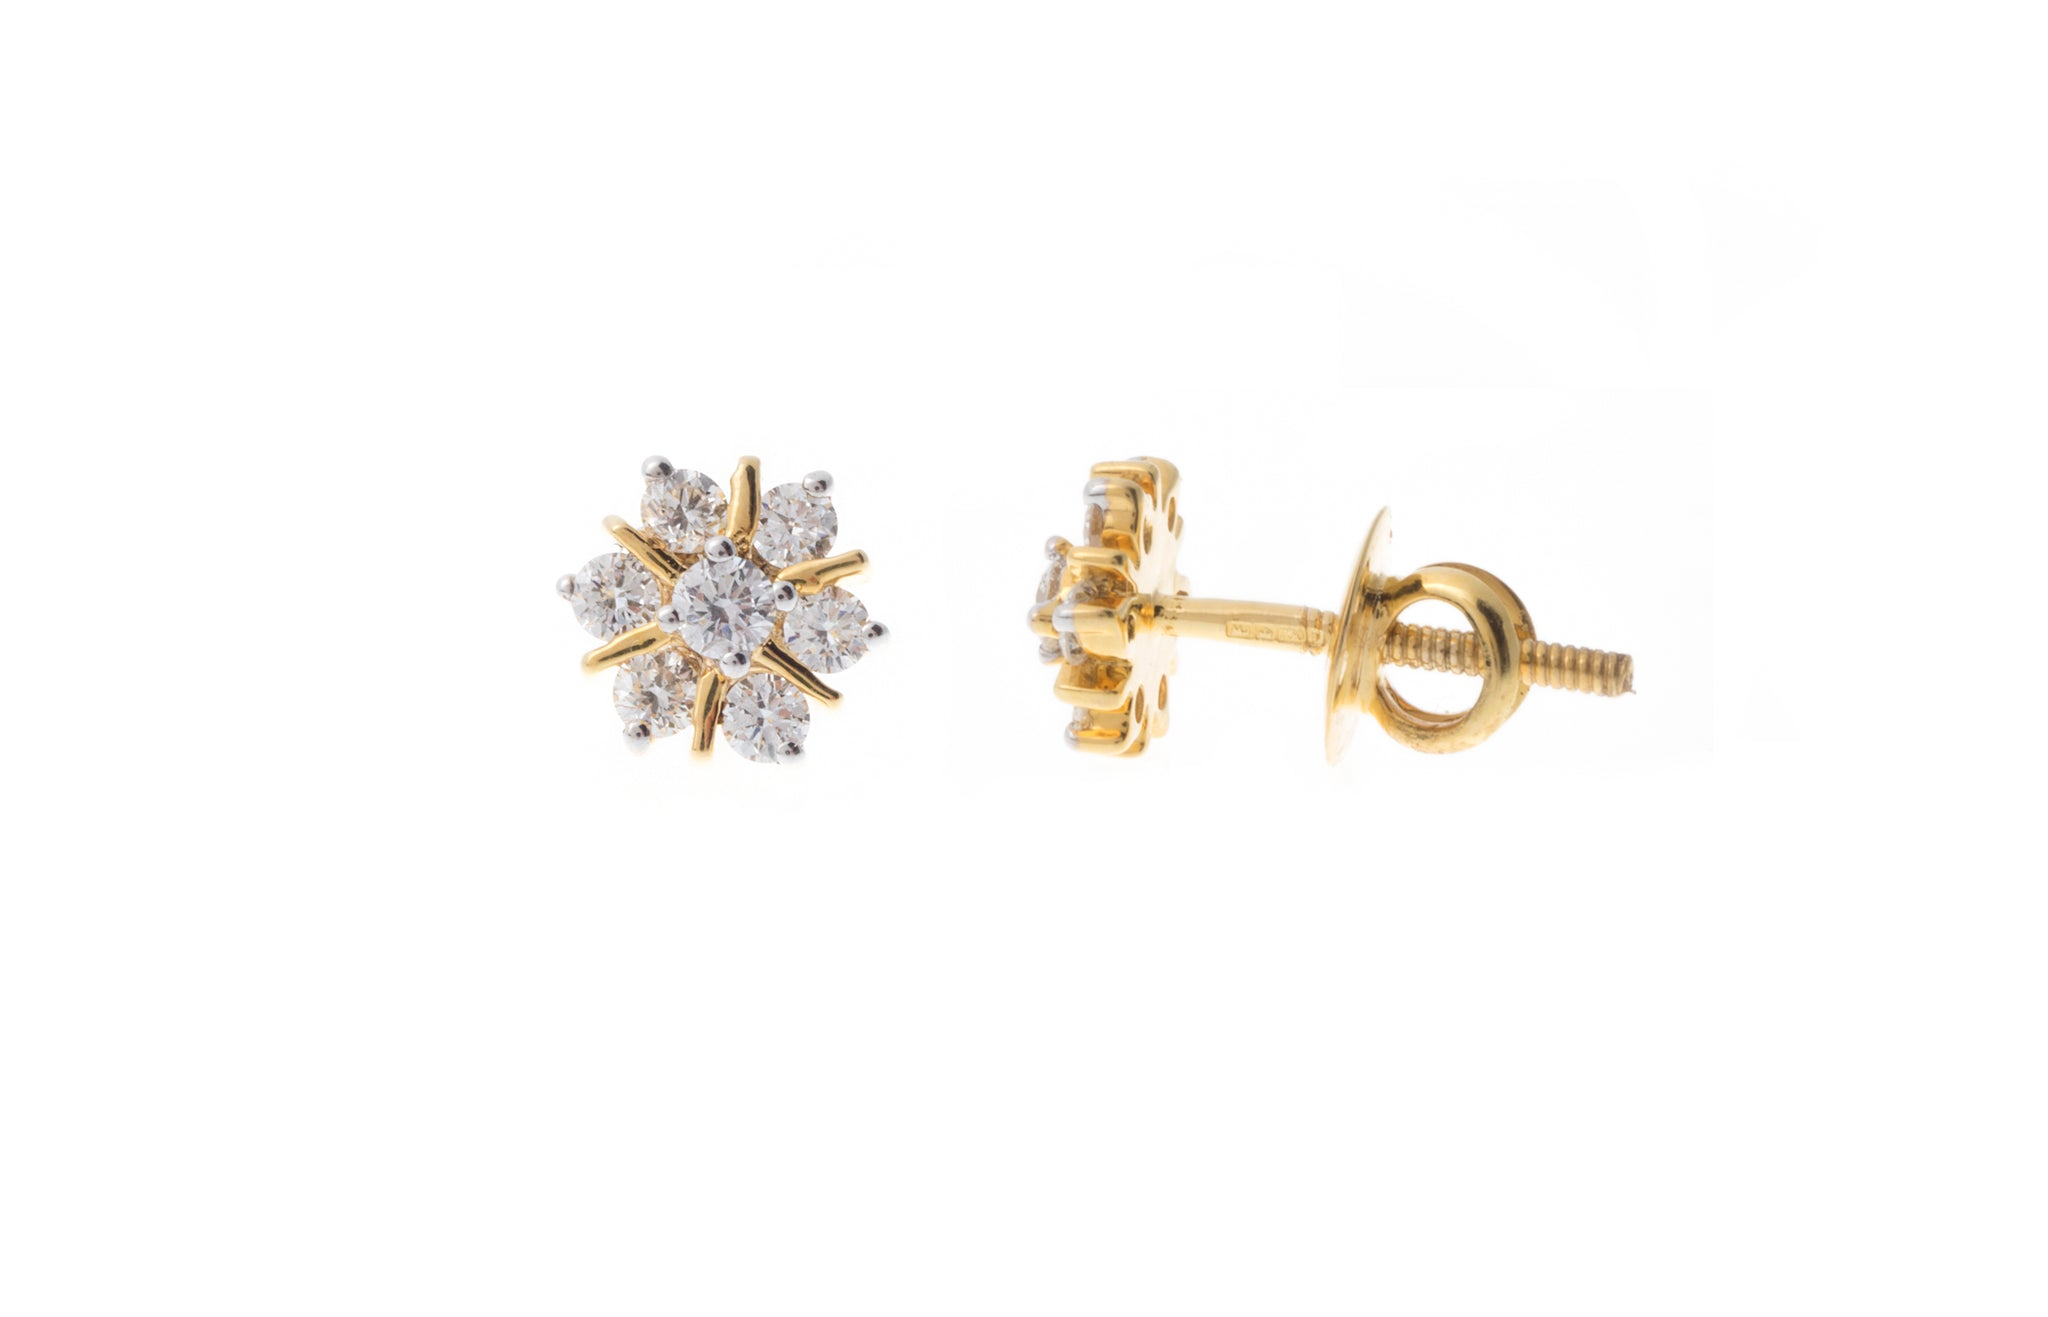 18ct Yellow Gold Diamond Earrings MCS2739